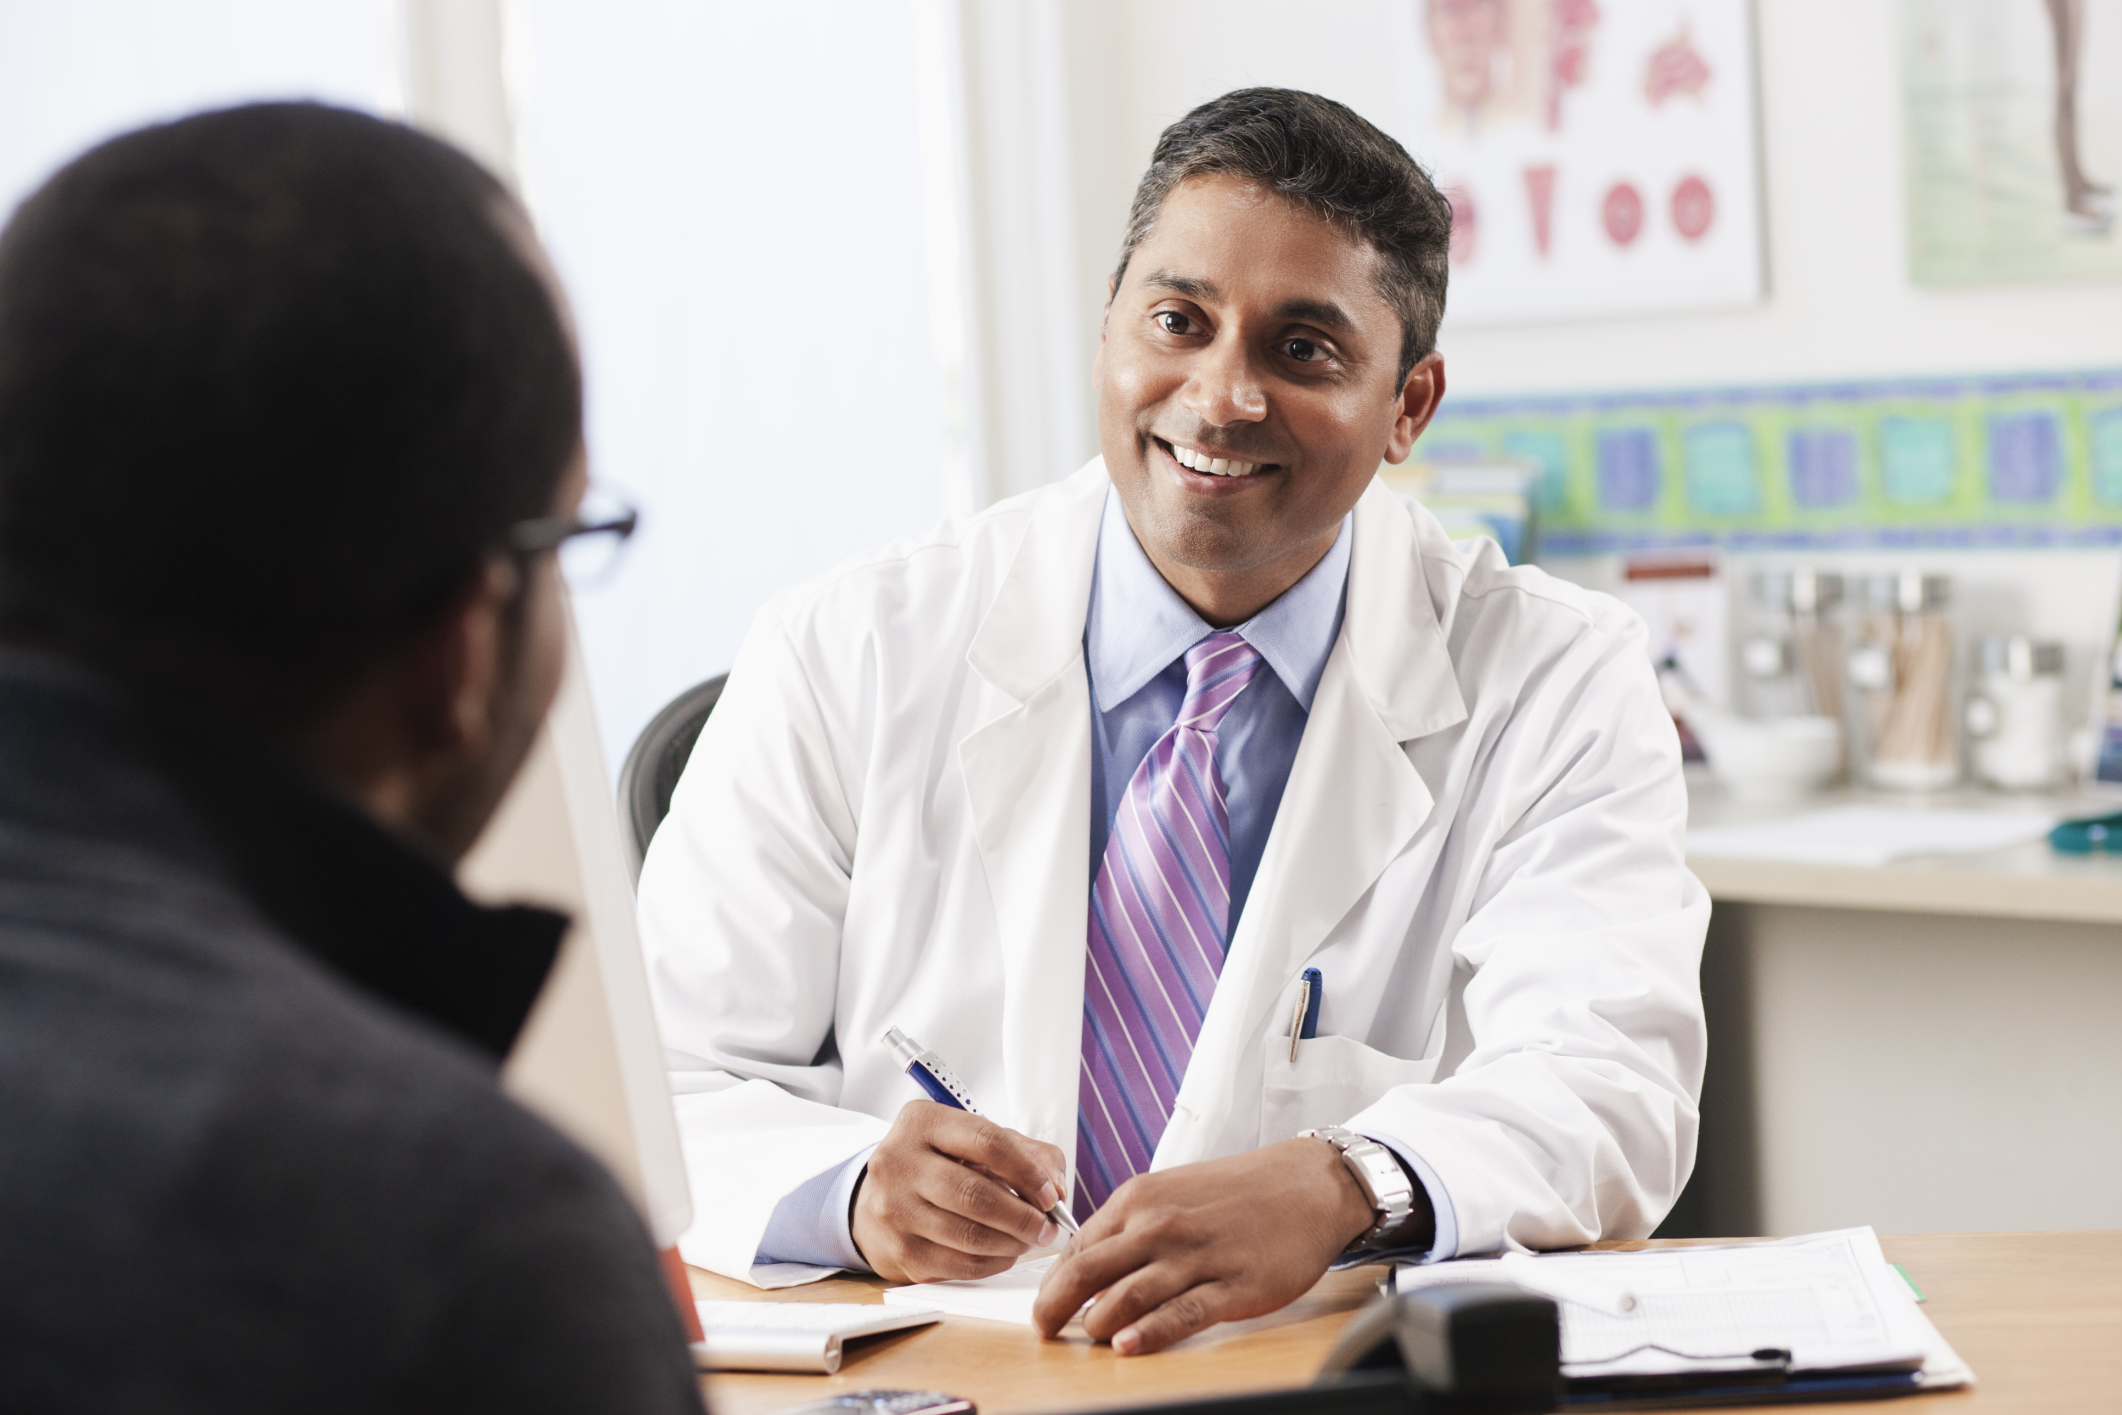 medicine physician and medical school A medical school is a tertiary educational institution —or part of such an institution— that teaches medicine, and awards a professional degree for physicians and.